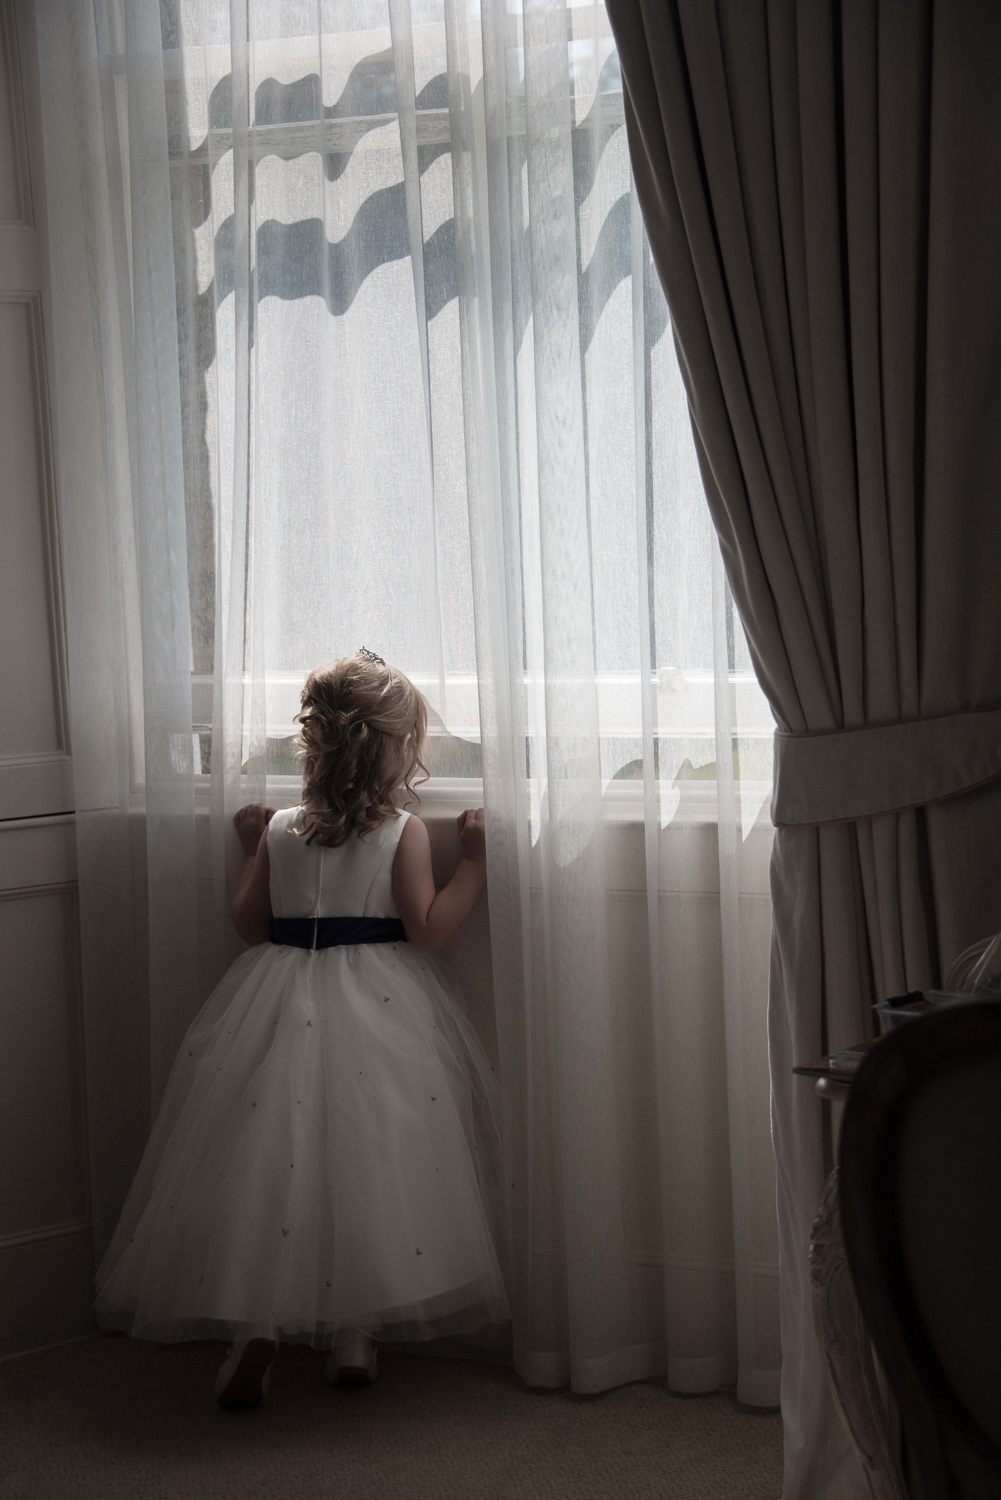 Weddings At Balbirnie House - kids at weddings looking out the window